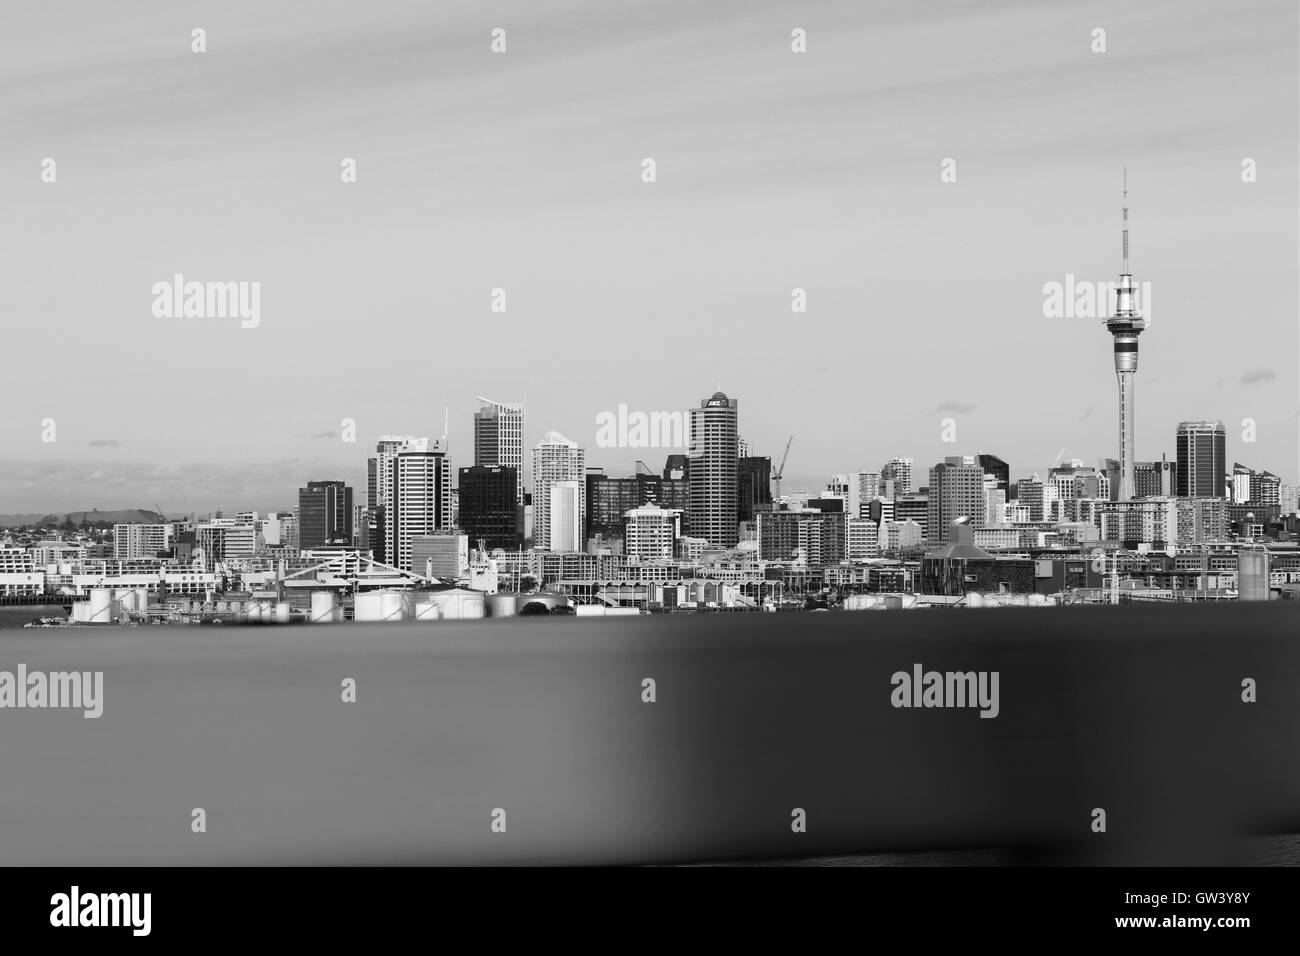 Sky Tower, Auckland City, North Island, New Zealand - Stock Image